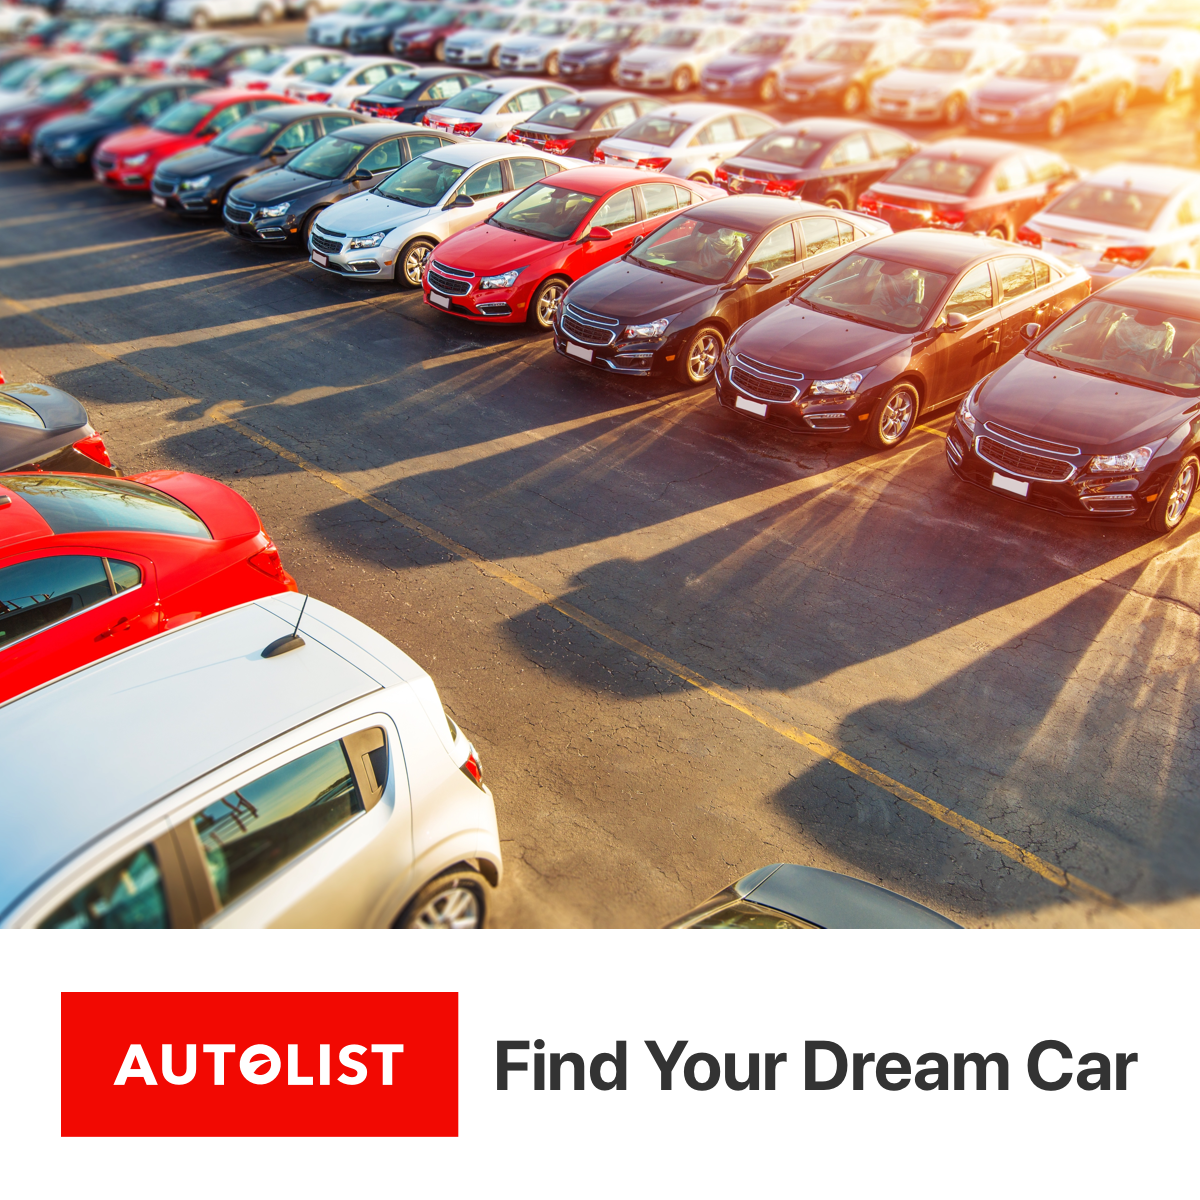 Autolist Search New And Used Cars For Sale Compare Prices And Reviews